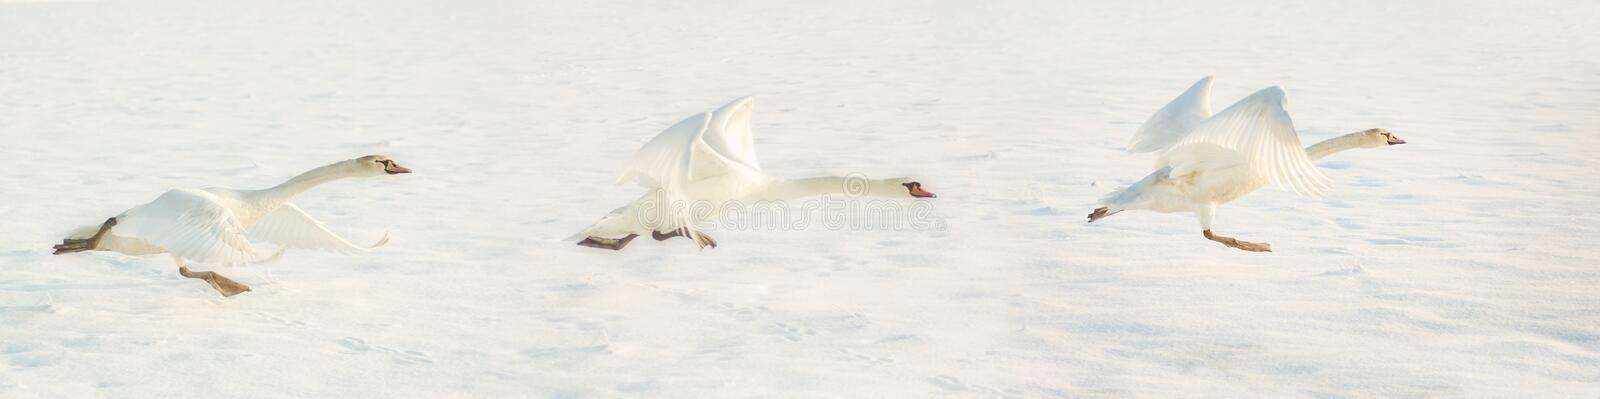 Fly away. Panorama picture of three white swans taking off, flying away, in a white snow background